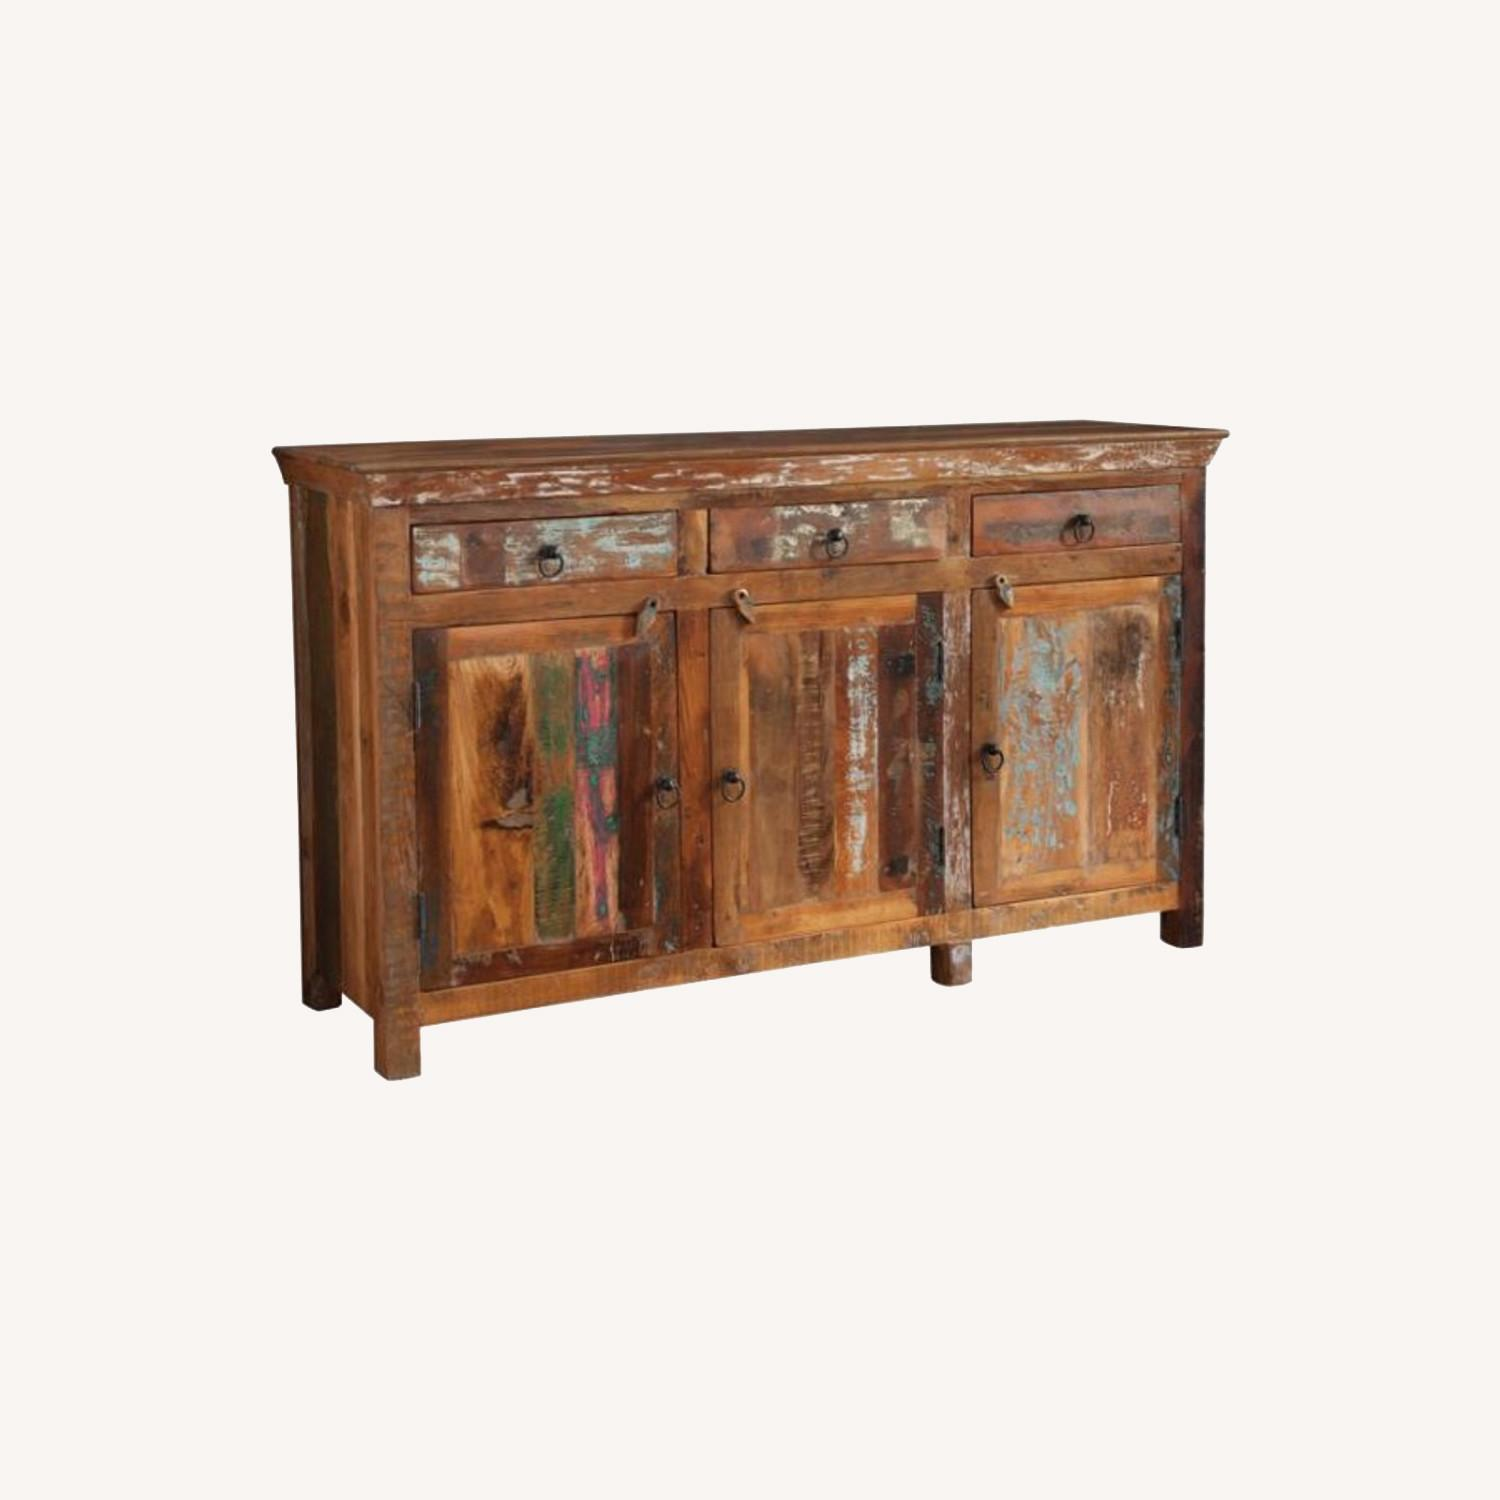 Accent Cabinet In Reclaimed Wood Finish - image-3